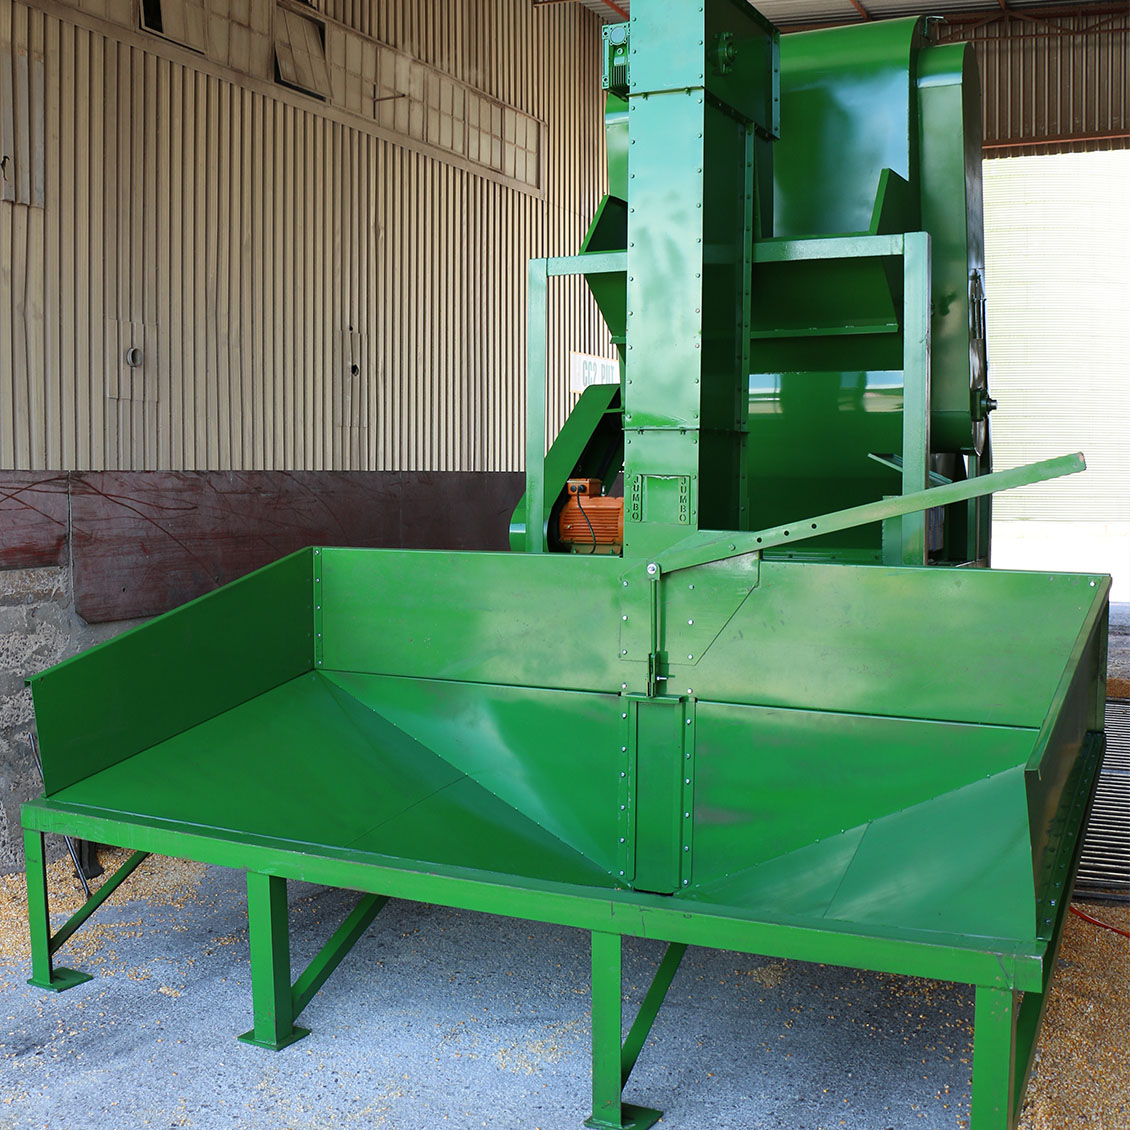 JAPS Jumbo Grain Cleaner installed at the Molare feed mill